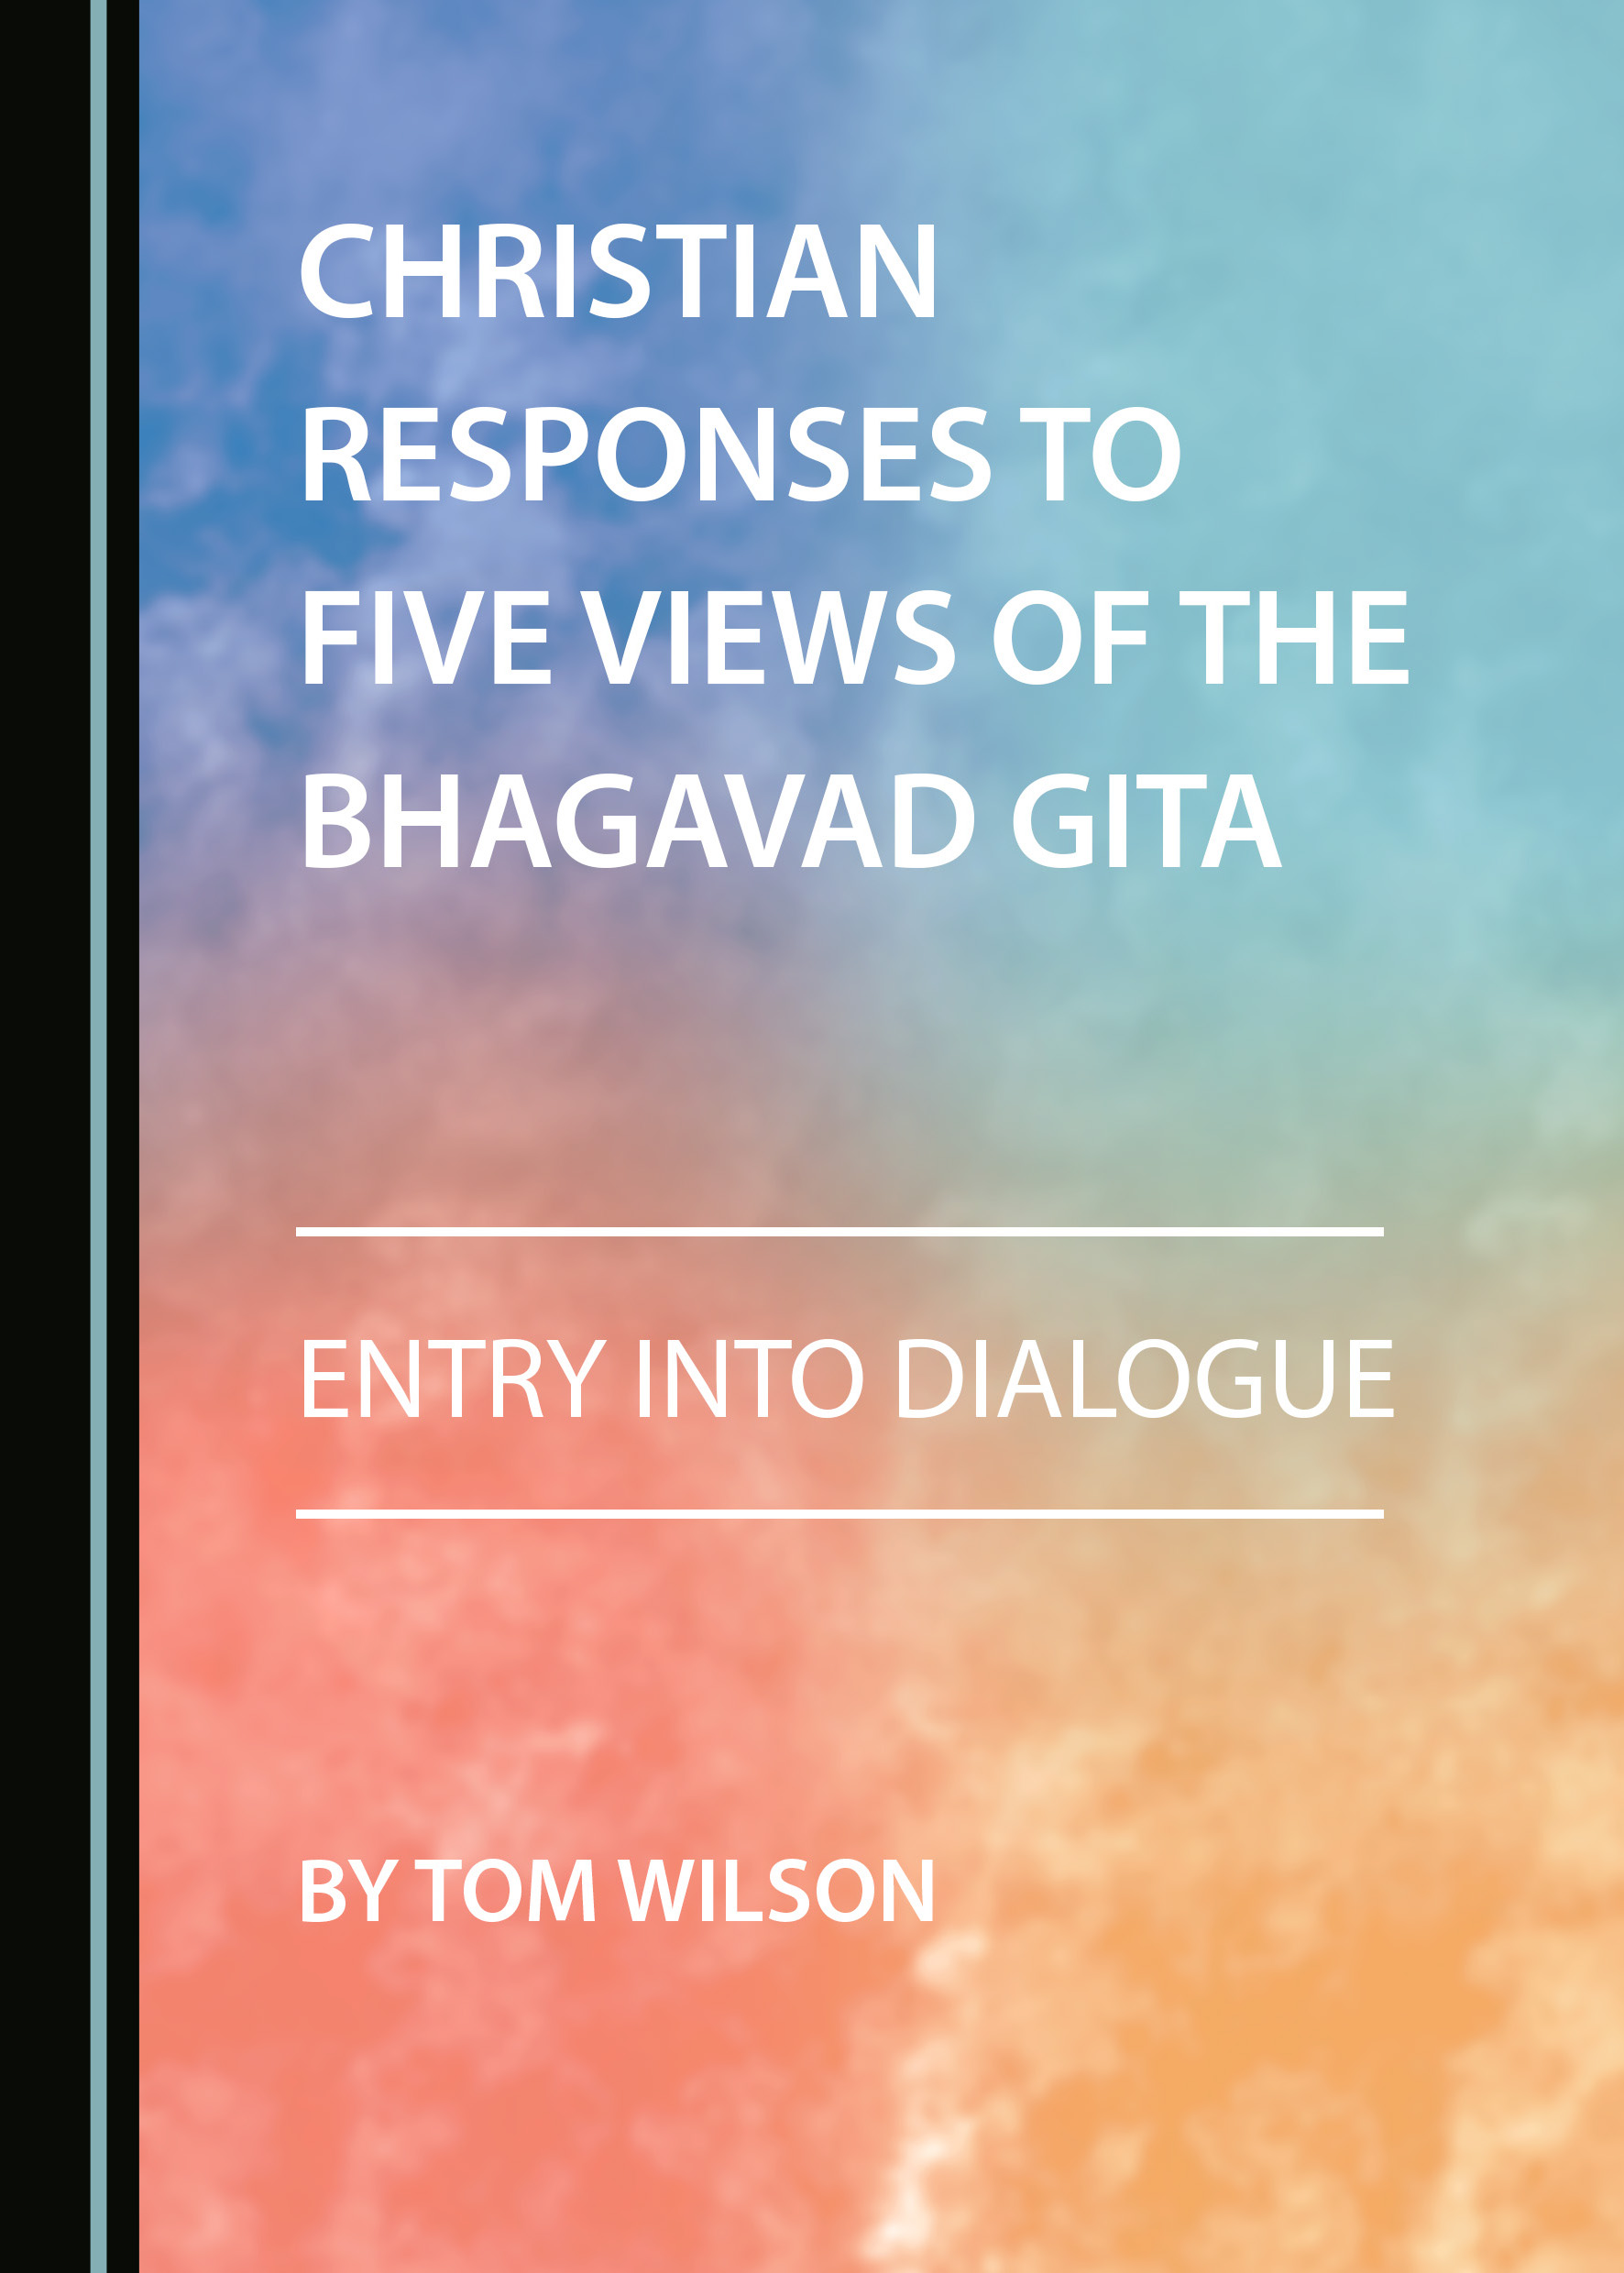 Christian Responses to Five Views of the Bhagavad Gita: Entry into Dialogue